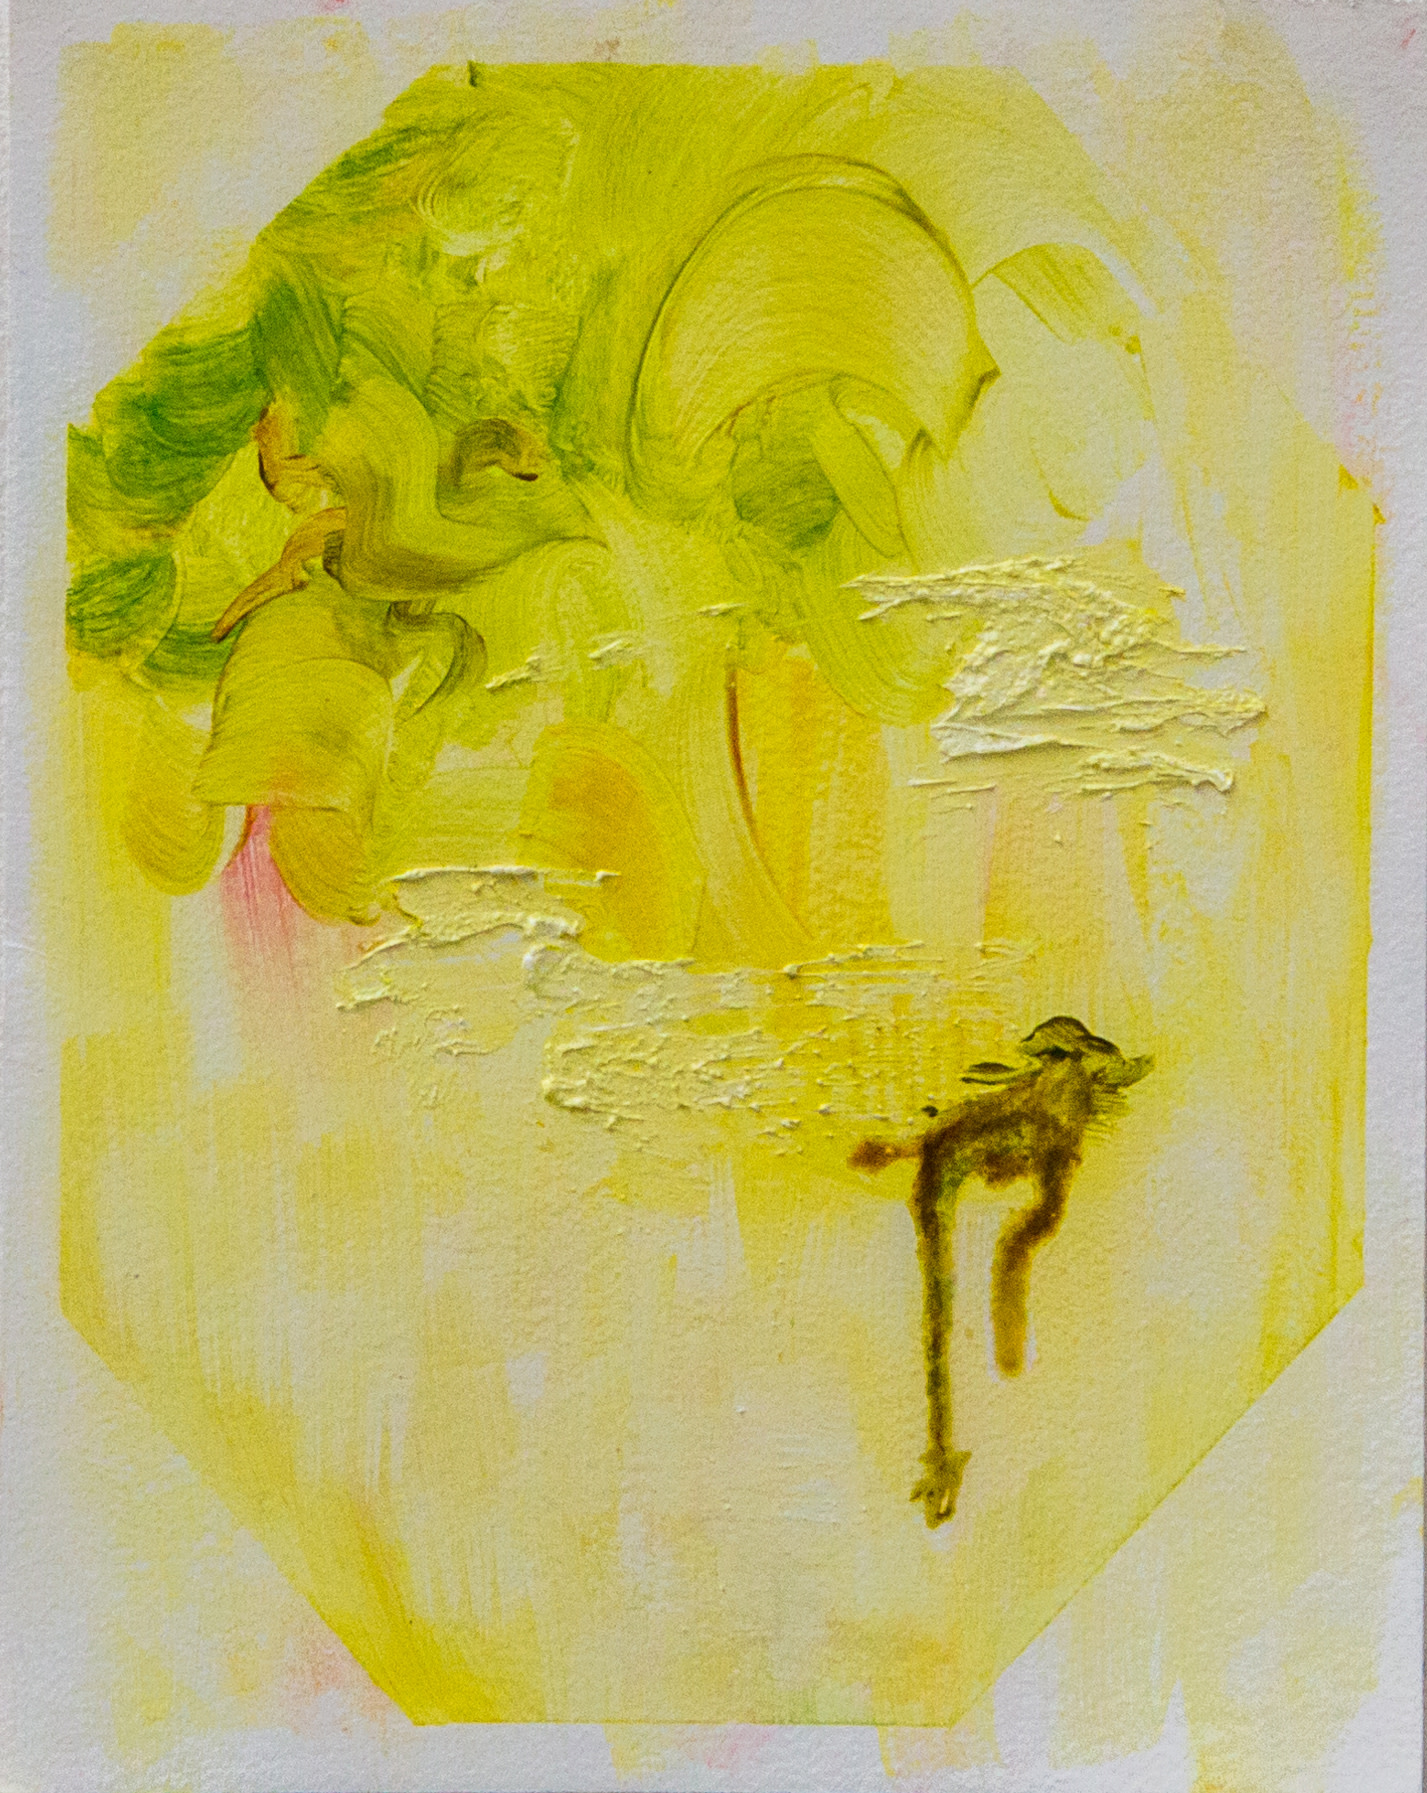 """<span class=""""link fancybox-details-link""""><a href=""""/artists/118-kate-dunn/works/2841/"""">View Detail Page</a></span><div class=""""artist""""><strong>Kate Dunn</strong></div> <div class=""""title"""">Untitled, 2018</div> <div class=""""medium"""">Acrylic Paint and Oil Paint on Paper</div> <div class=""""dimensions"""">37.2 x 31 cm<br /> 14 5/8 x 12 1/4 in.</div><div class=""""copyright_line"""">Copyright The Artist</div>"""